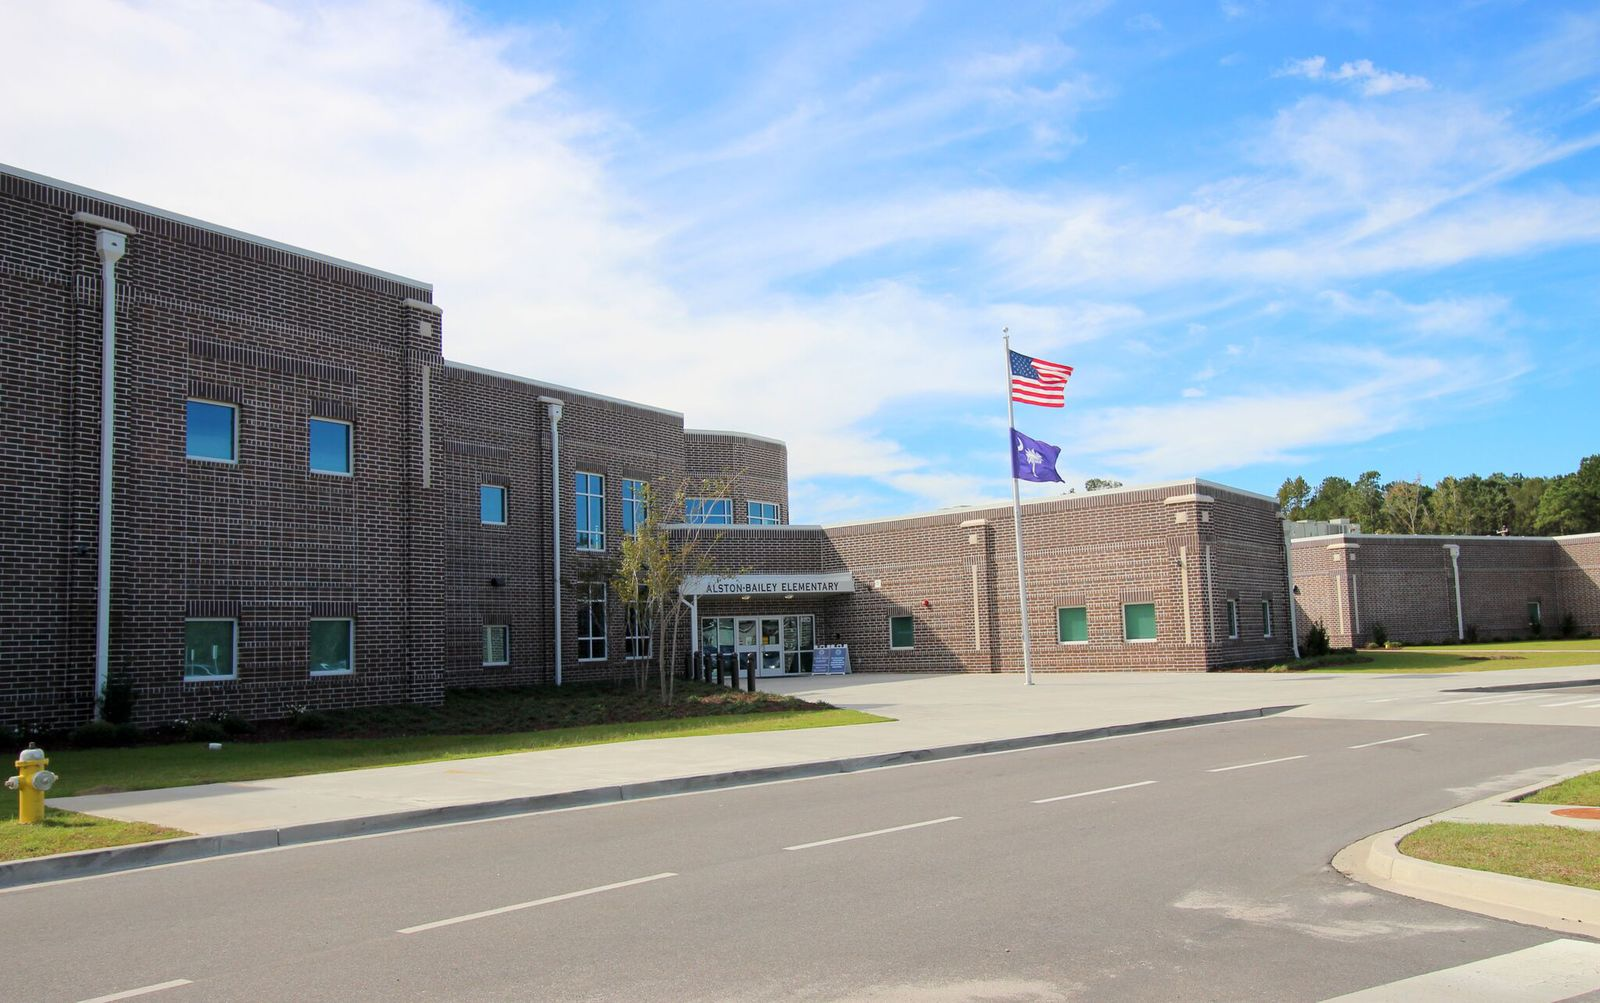 Alston Bailey Elementary School